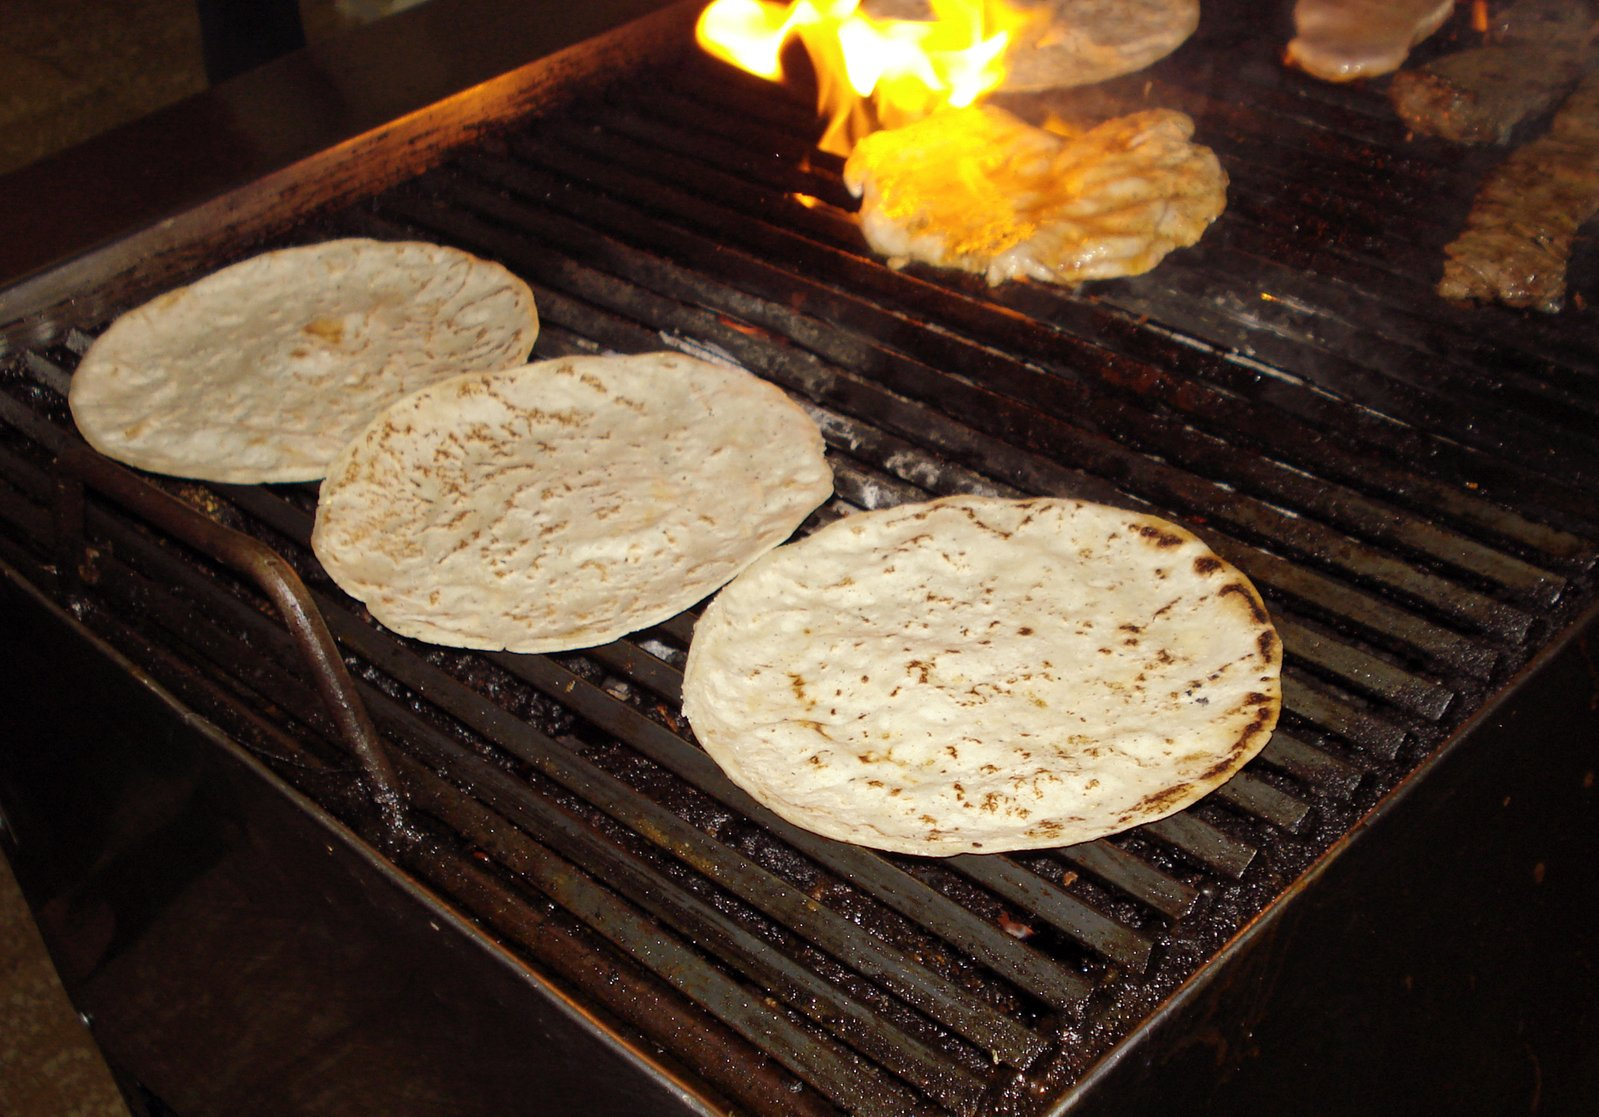 How To Remove Ink From Leather >> Free Tortillas Stock Photo - FreeImages.com